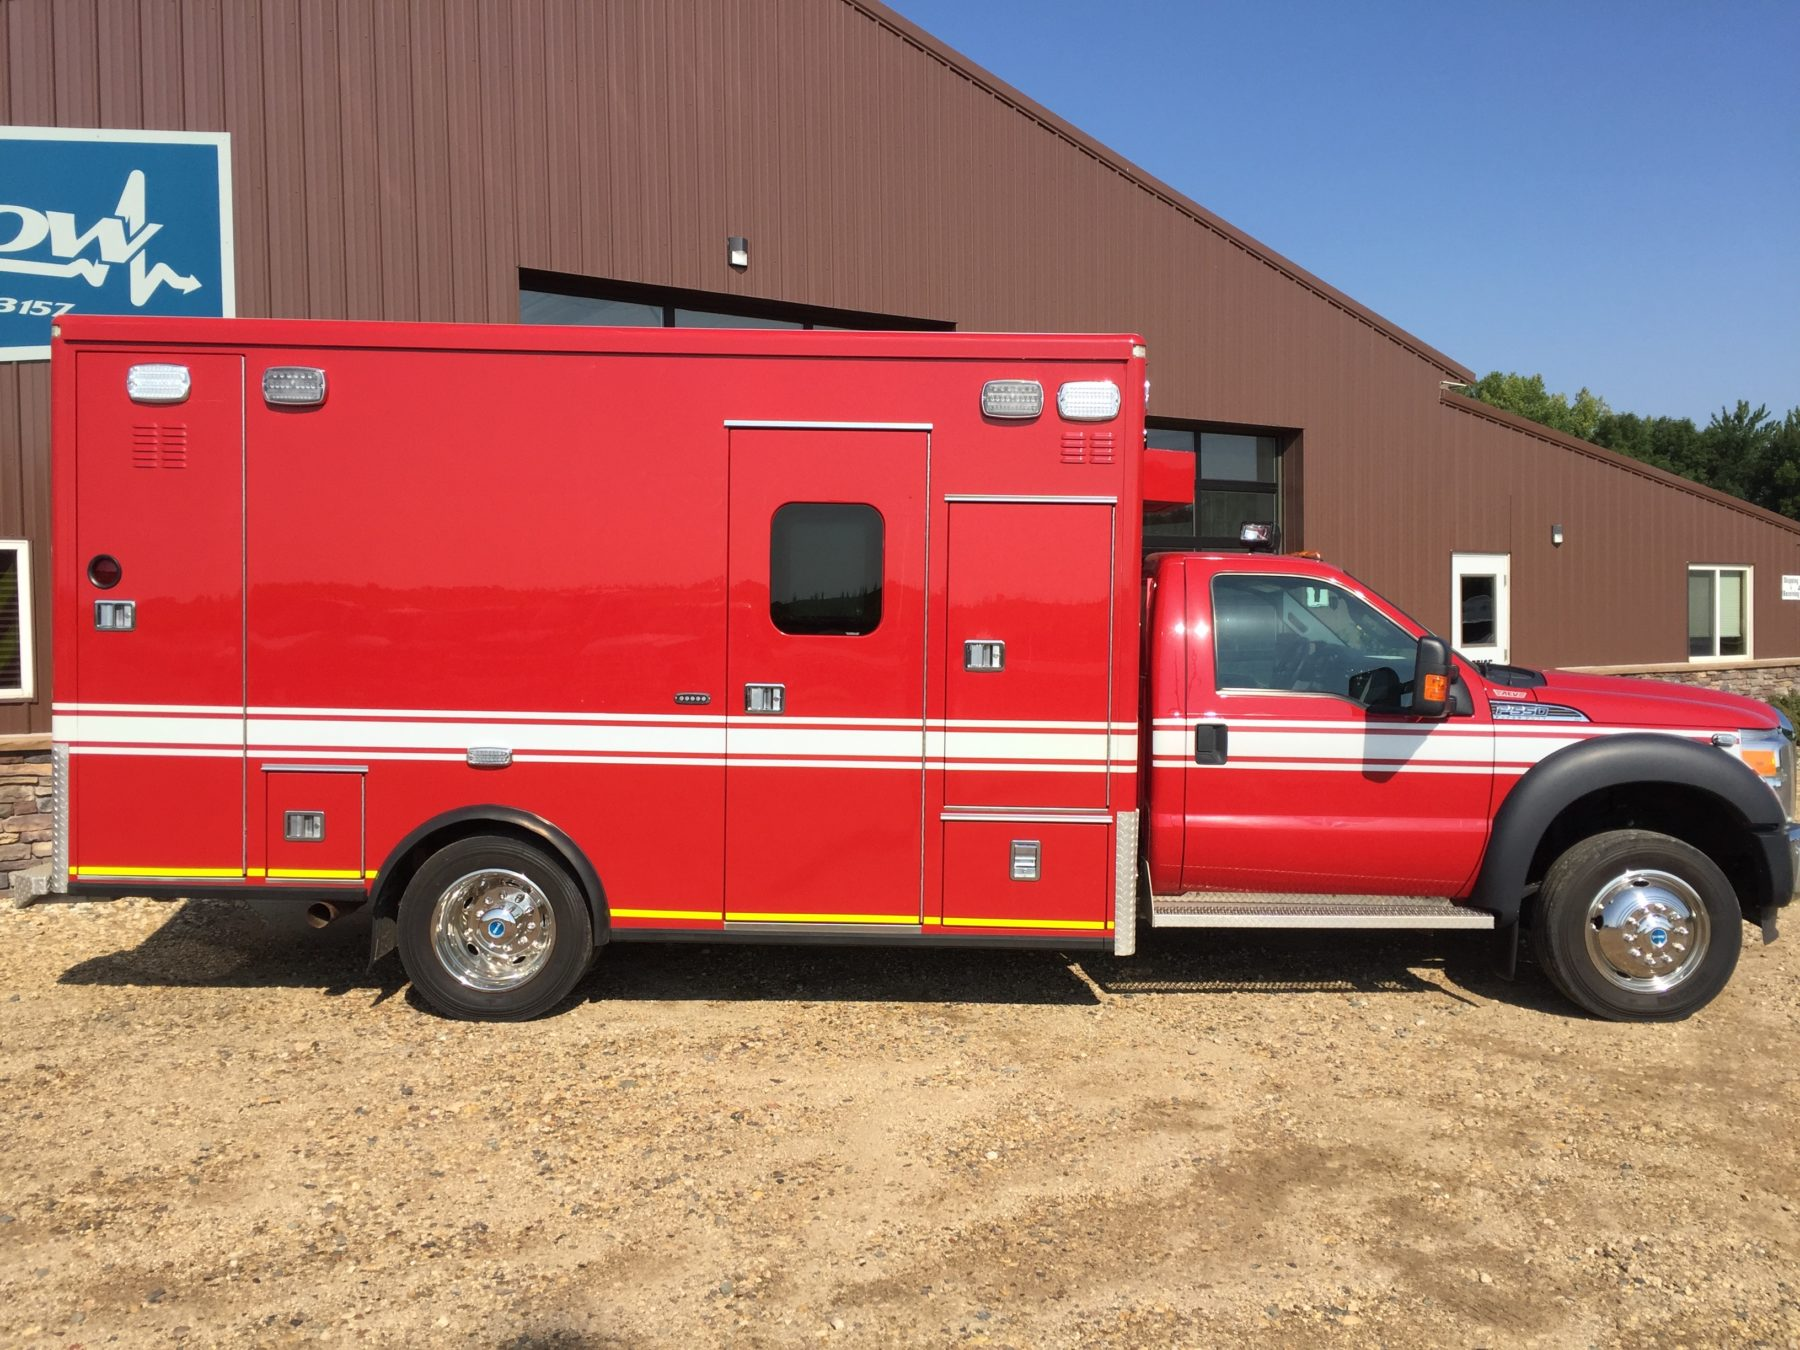 2012 Ford F550 4x4 Heavy Duty Ambulance For Sale – Picture 4